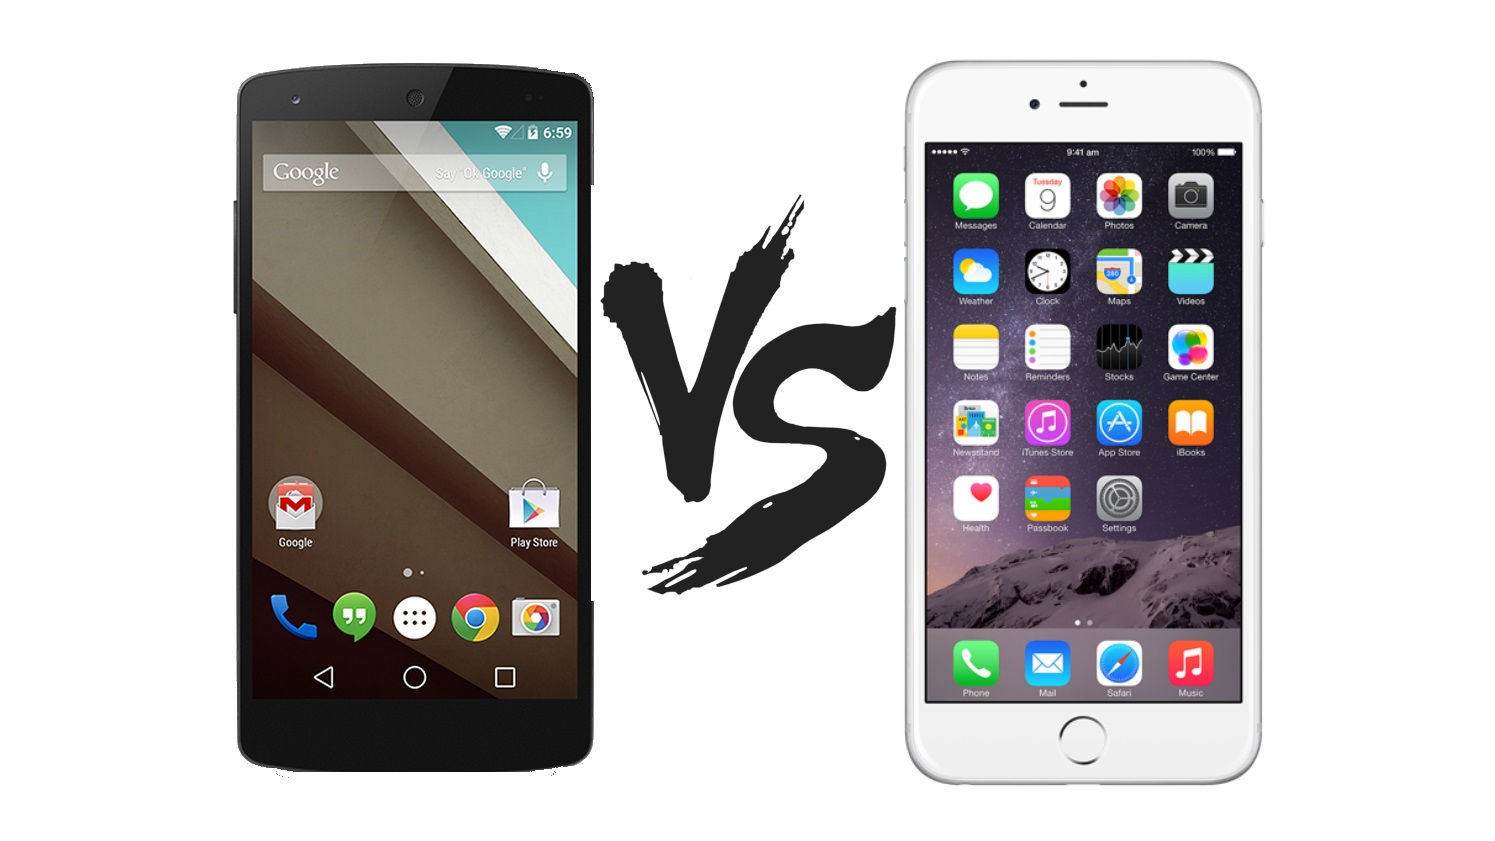 Phone Iphones Compared To Android Phones android 5 0 lollipop vs ios 8 which is best expert reviews